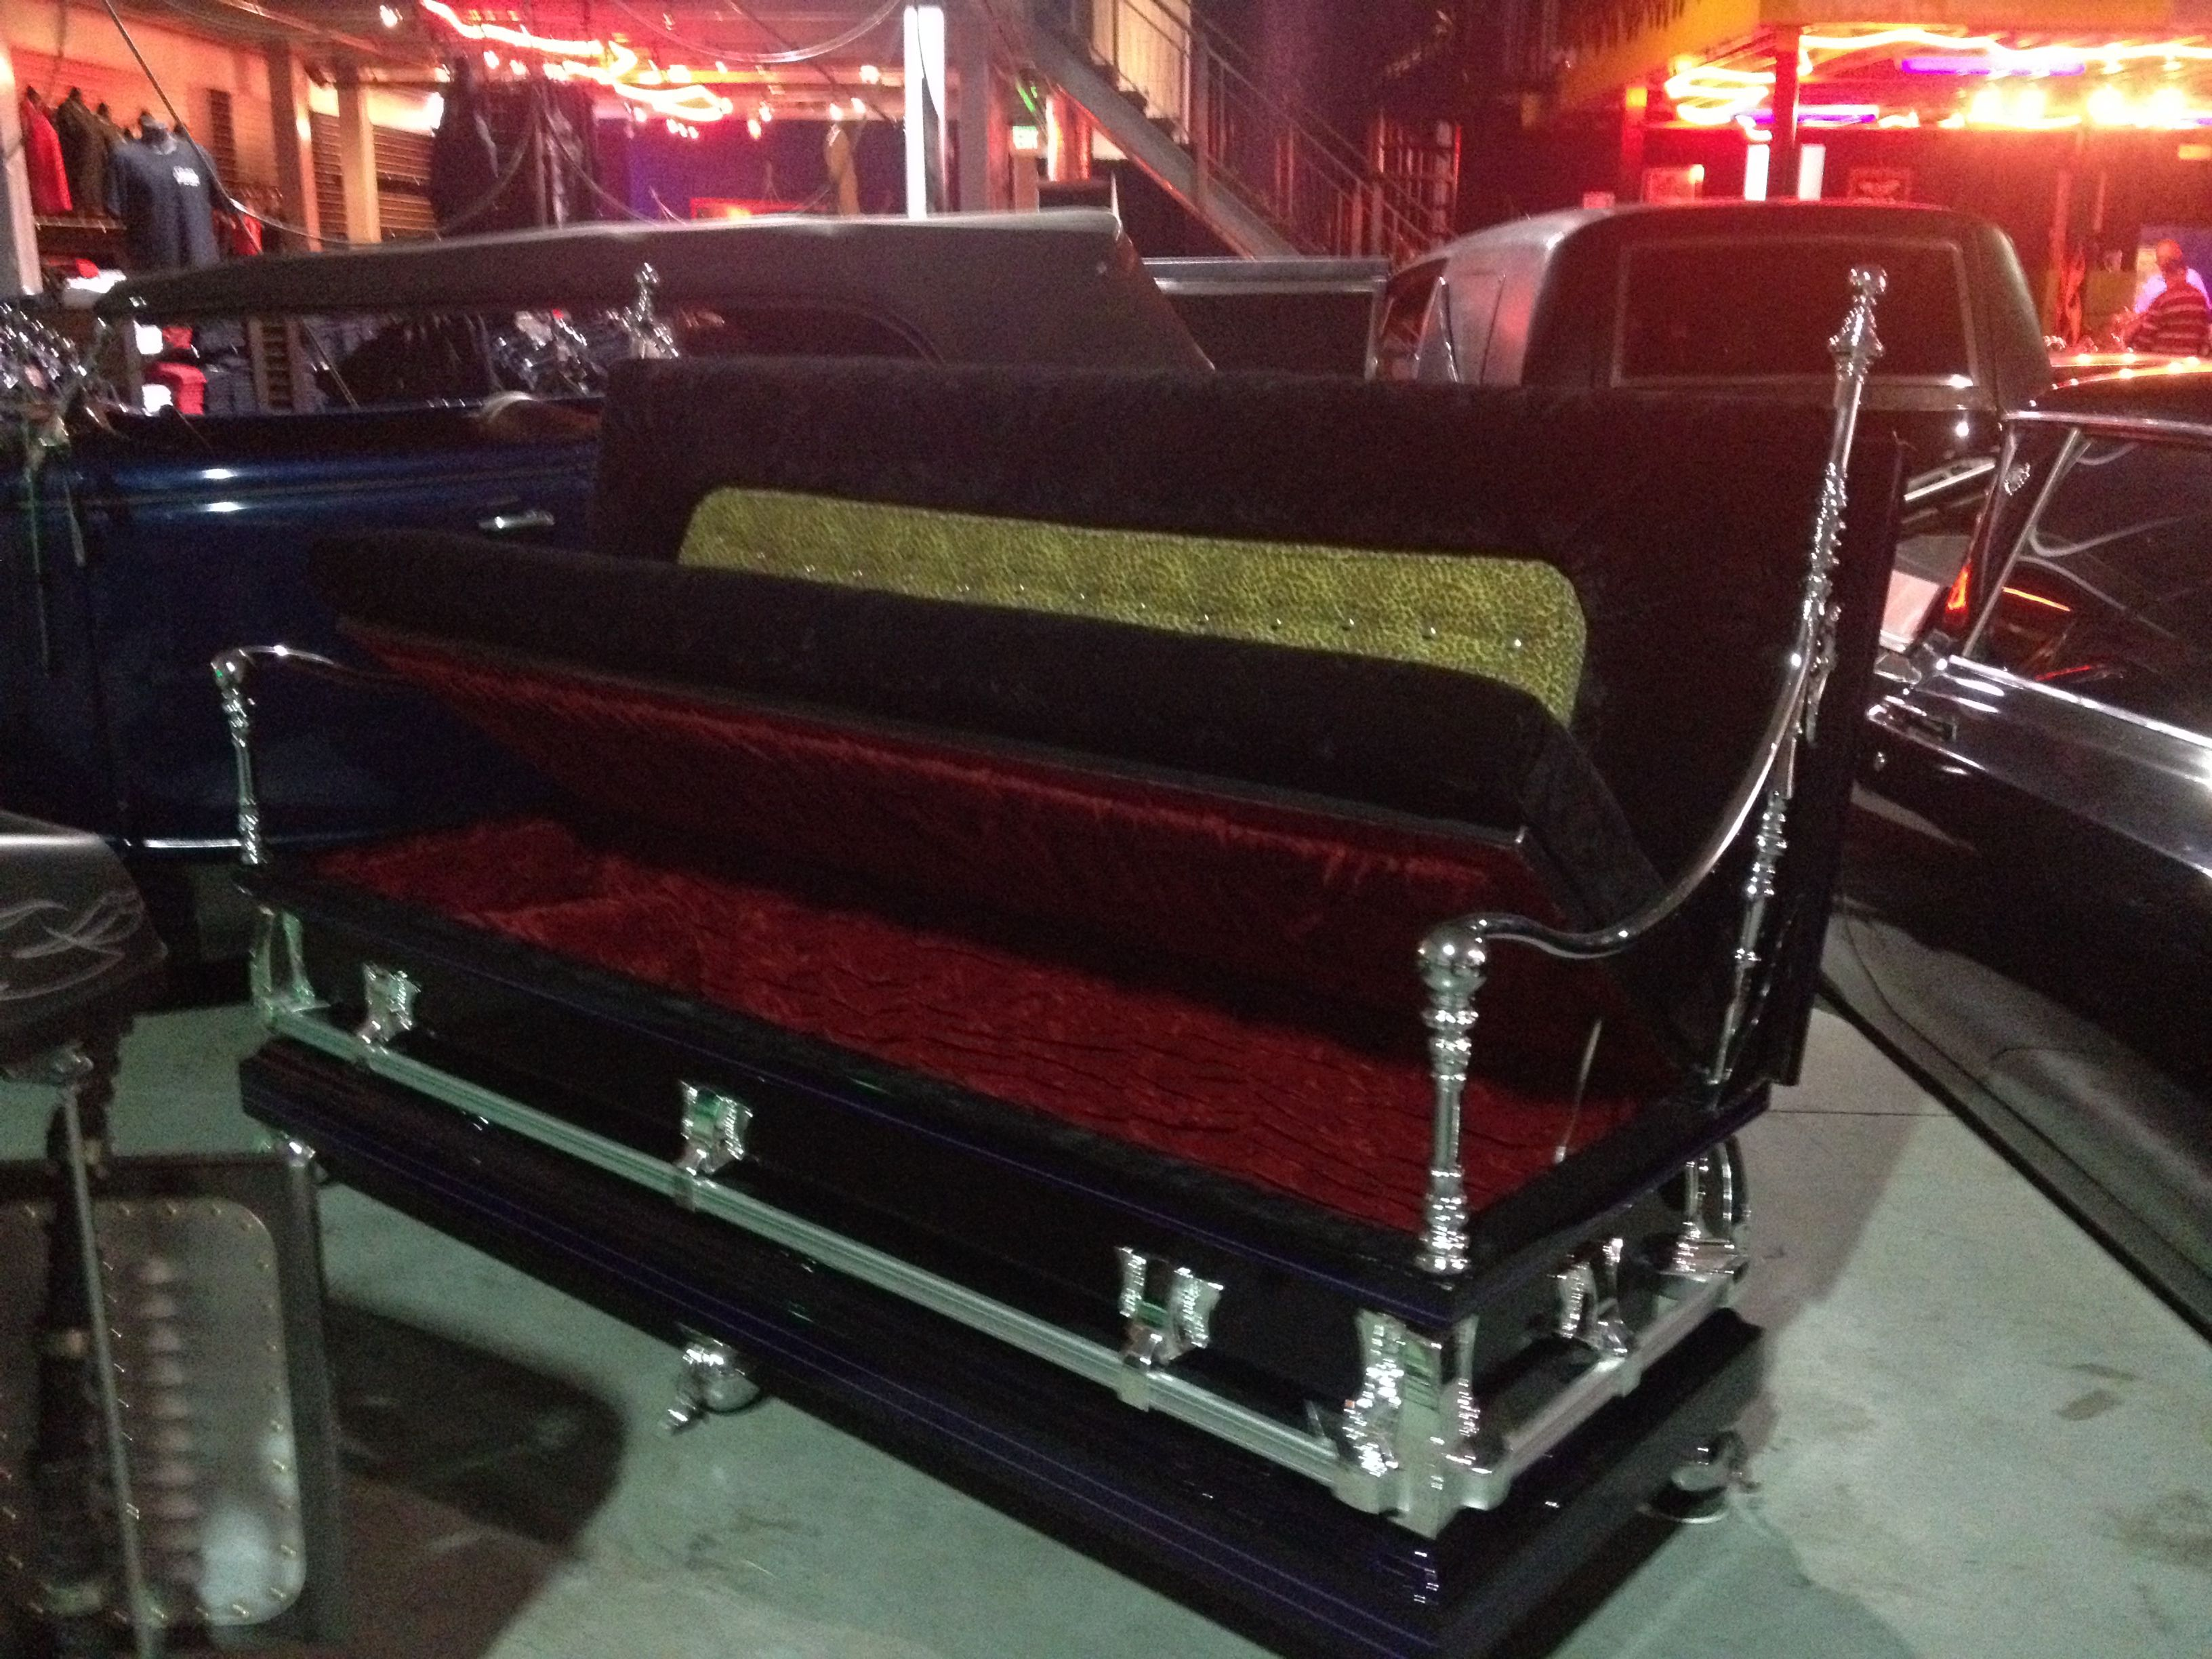 Custom Sectional Sofas Las Vegas Sofa Throw Covers Argos Coffin At Counts Kustoms In Cars Pinterest